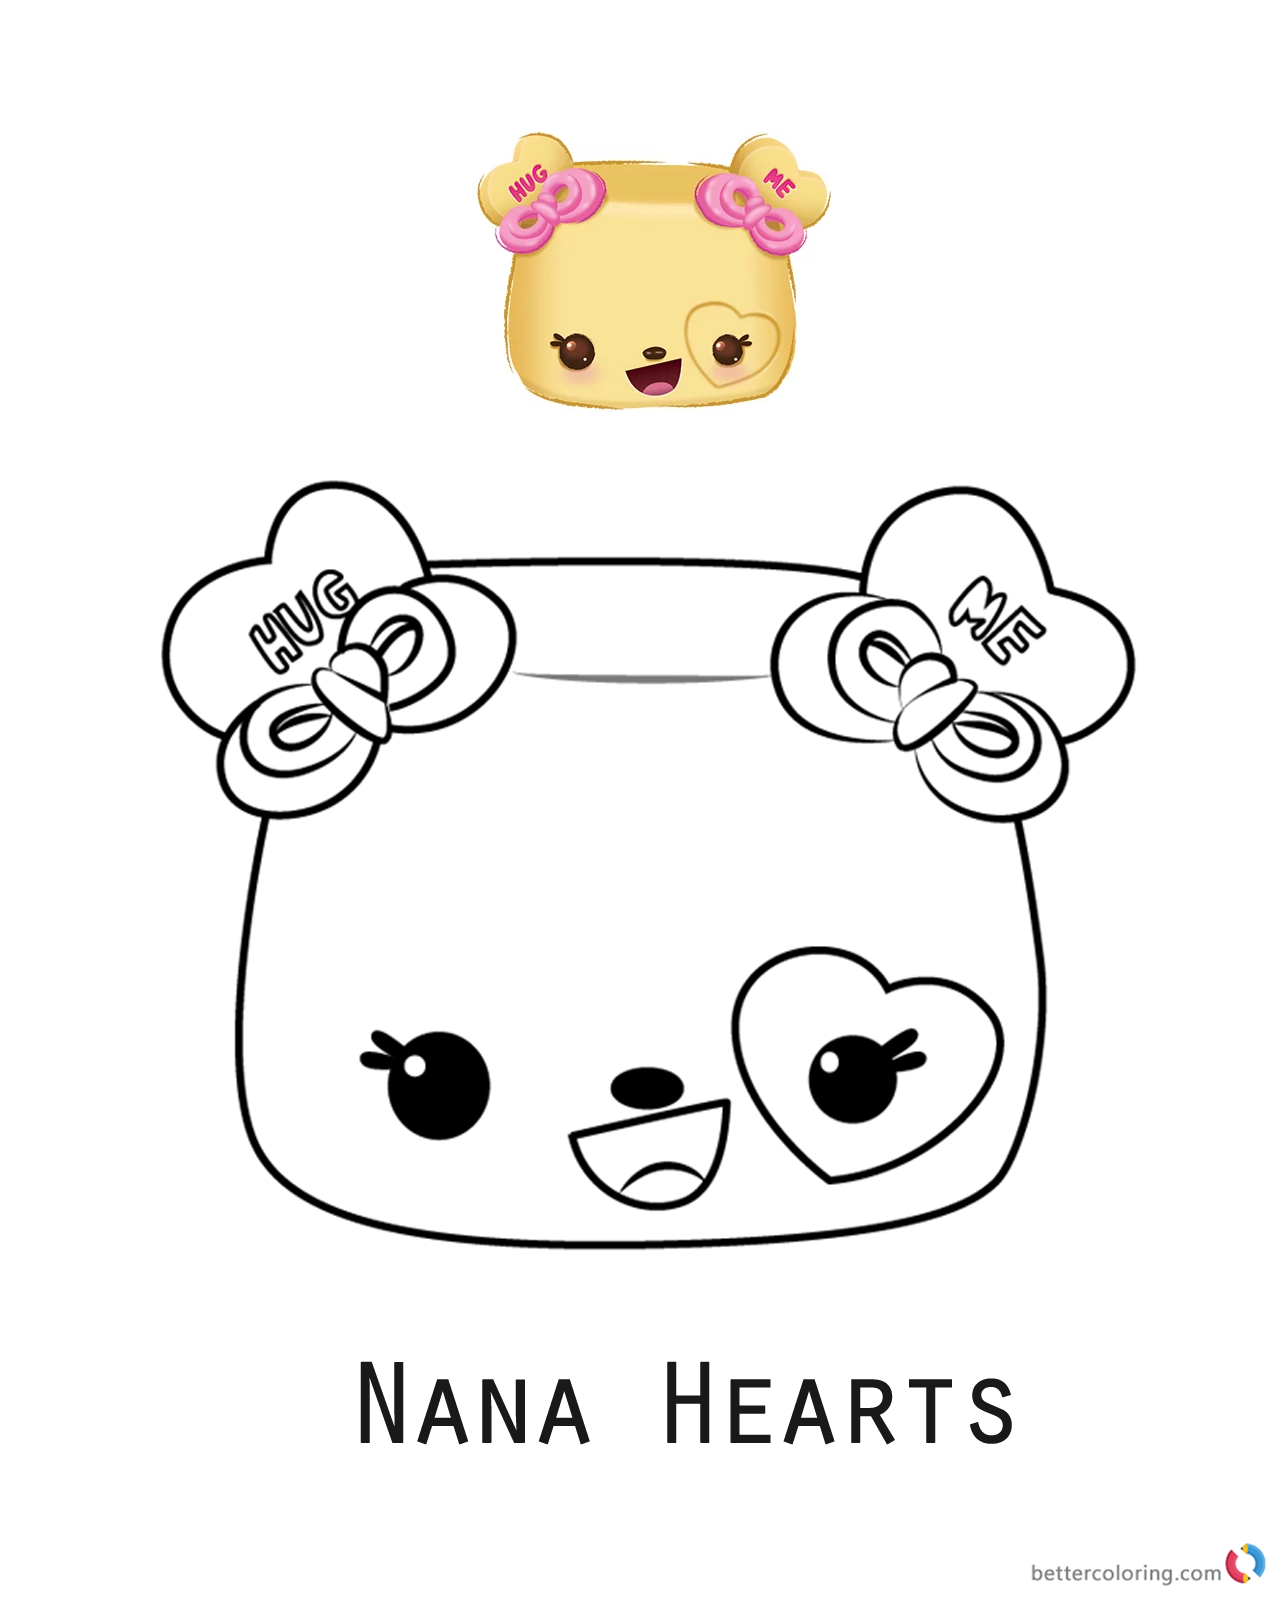 Nana Hearts from Num Noms coloring pages printable